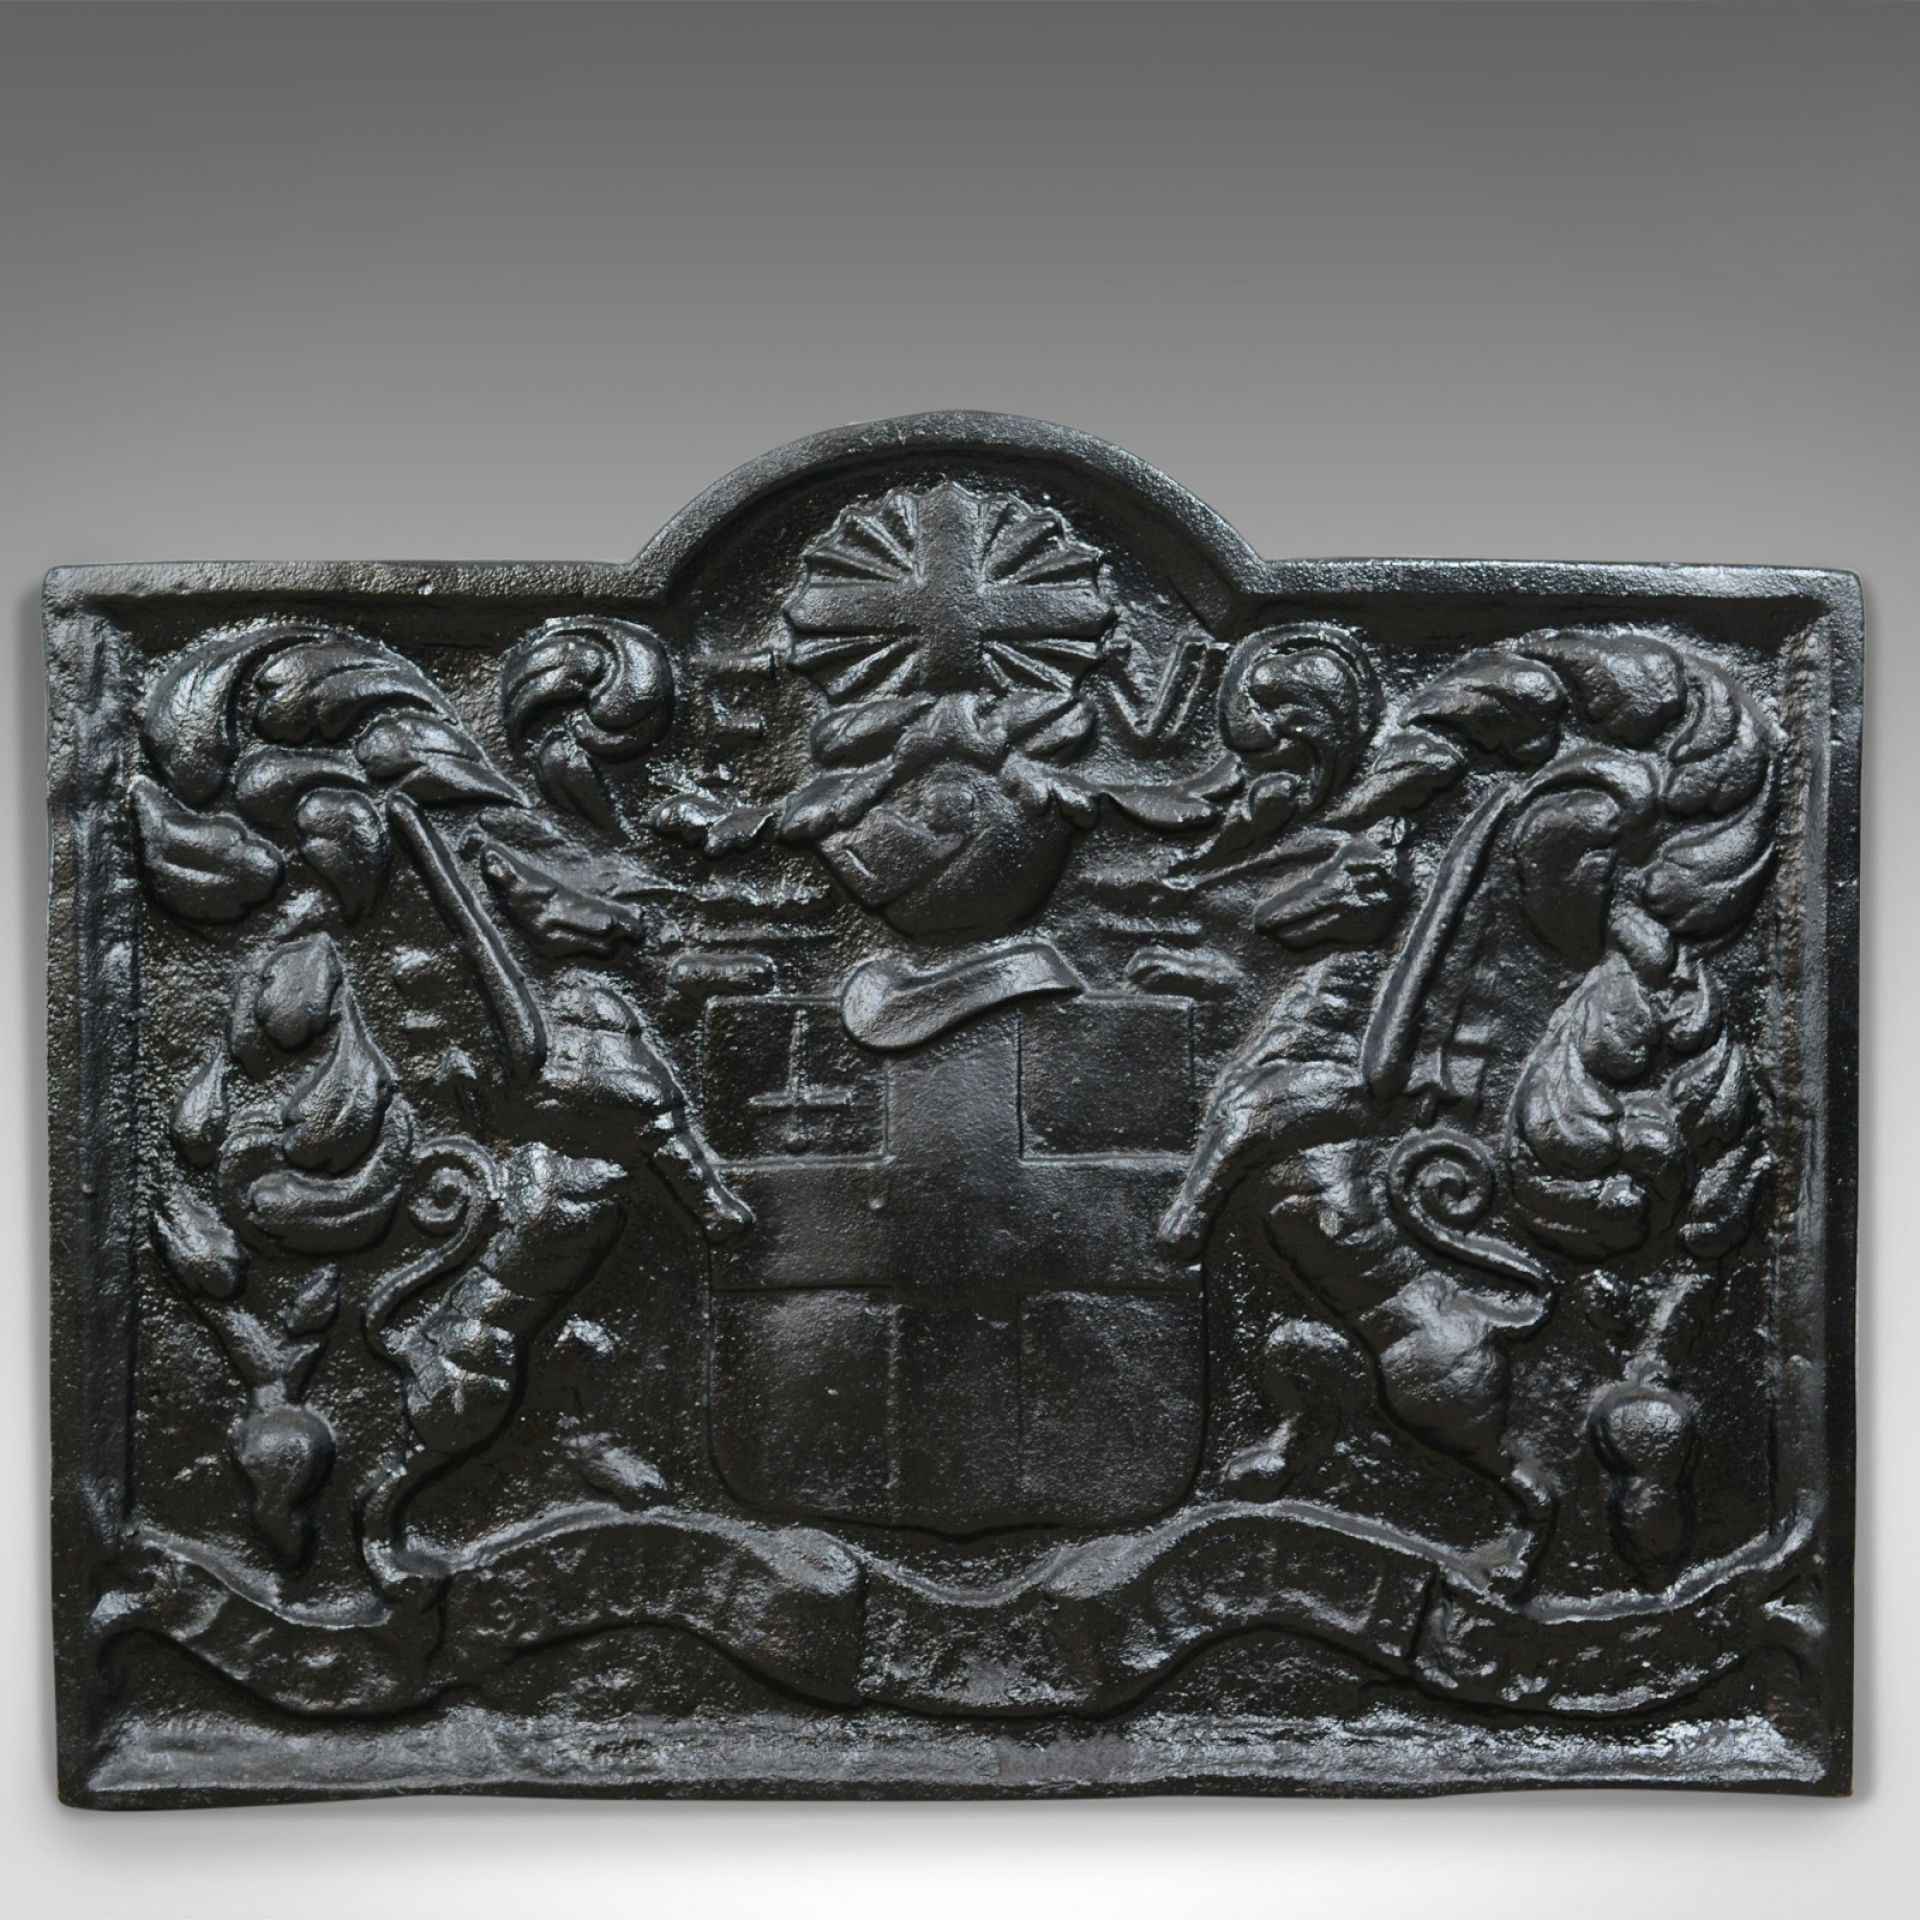 Cast Iron Fire Back, Early 20th Century, Coat of Arms, English, Heavy